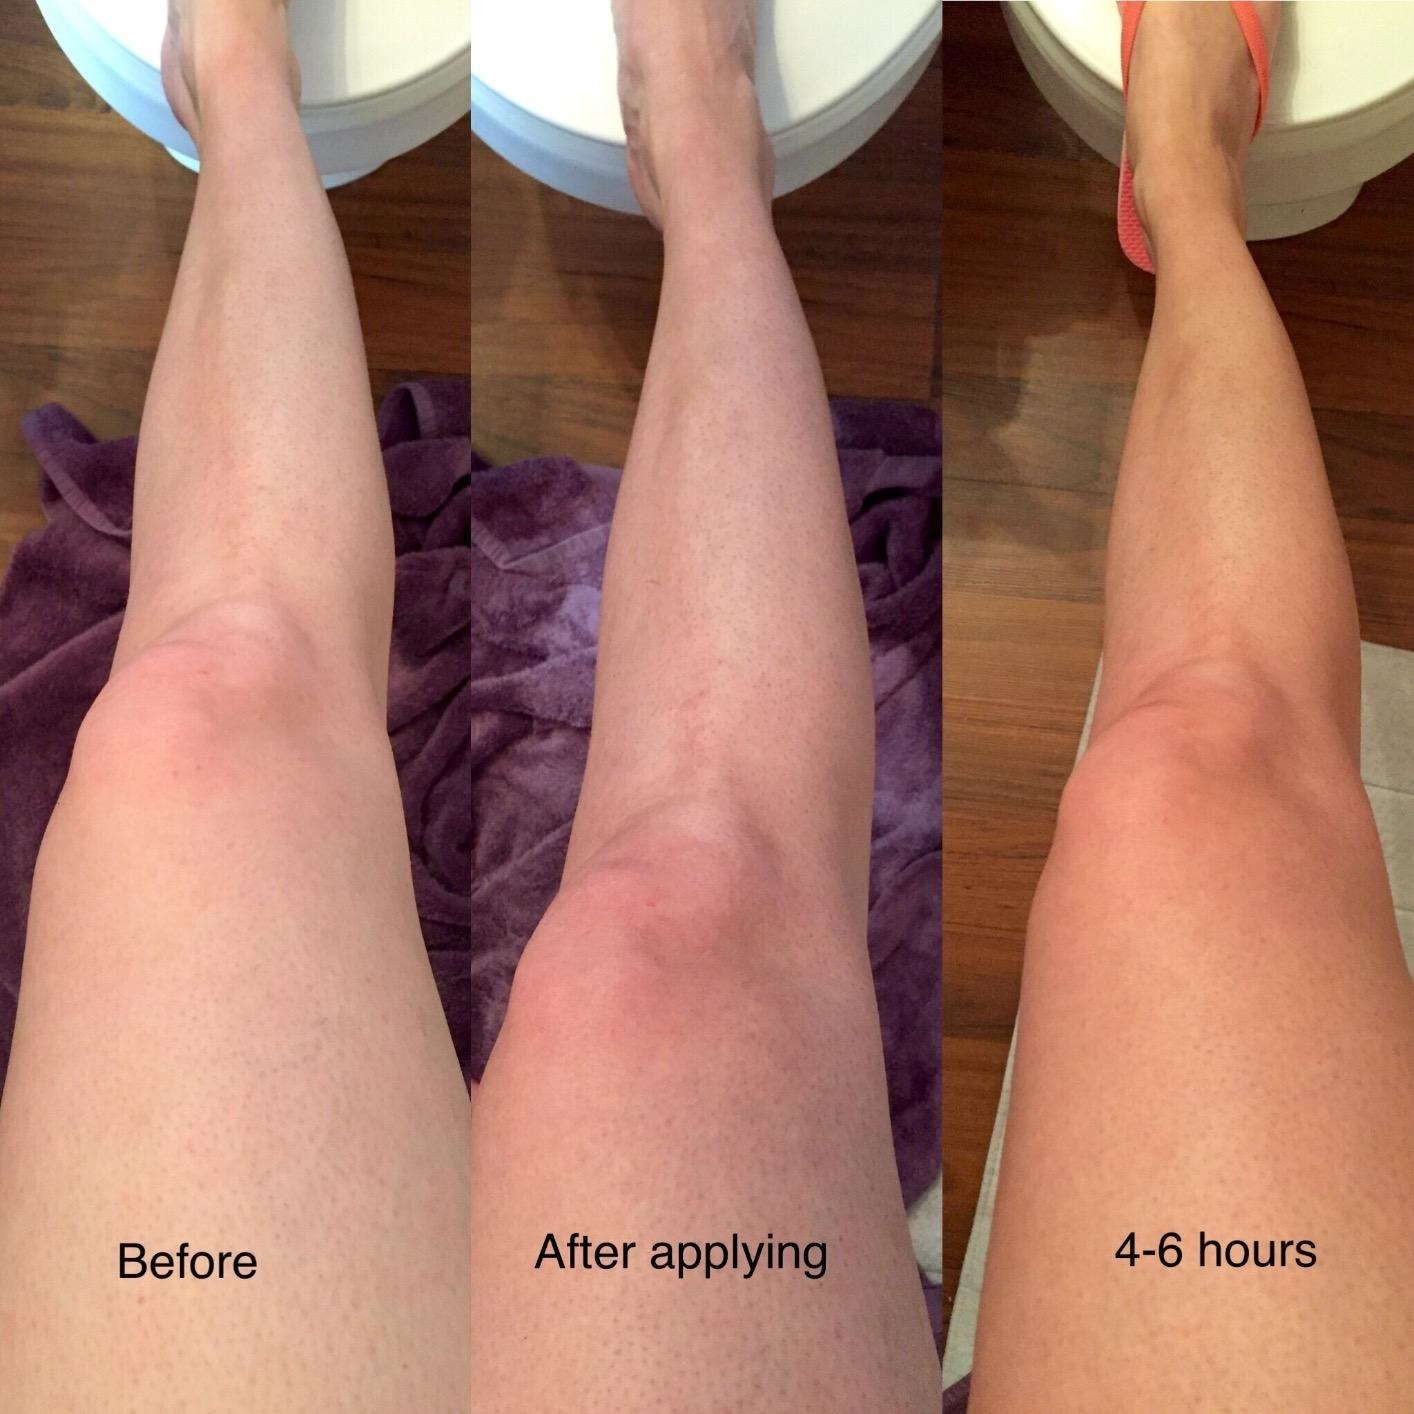 Reviewer's photo showing how the product progressively darkened to leave a natural-looking tan